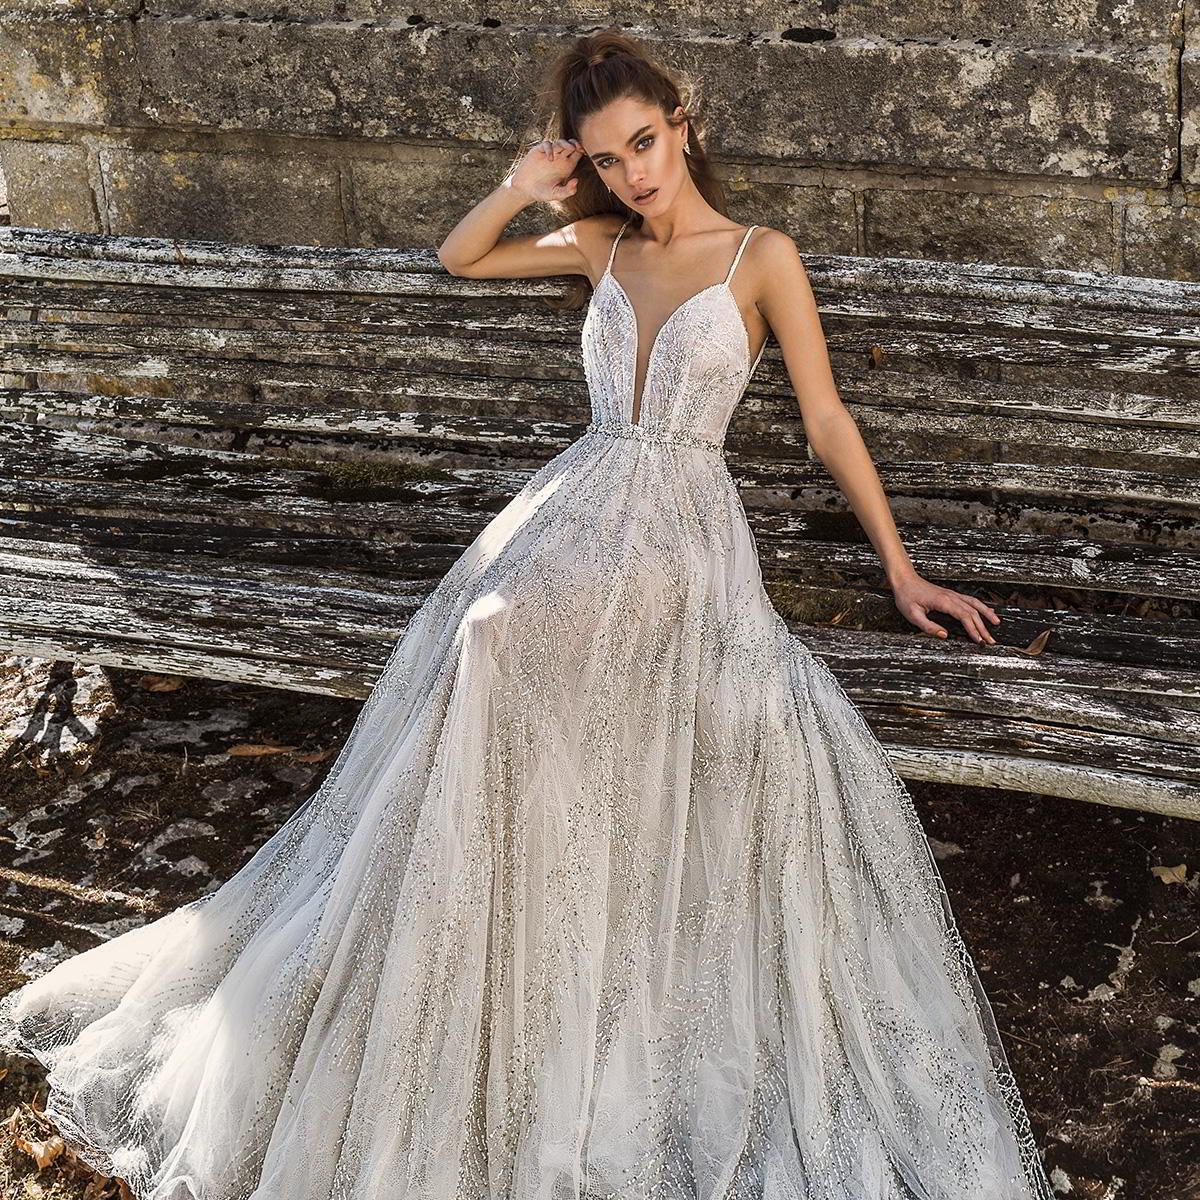 Bridal Dresses 2019: Birenzweig 2019 Wedding Dresses